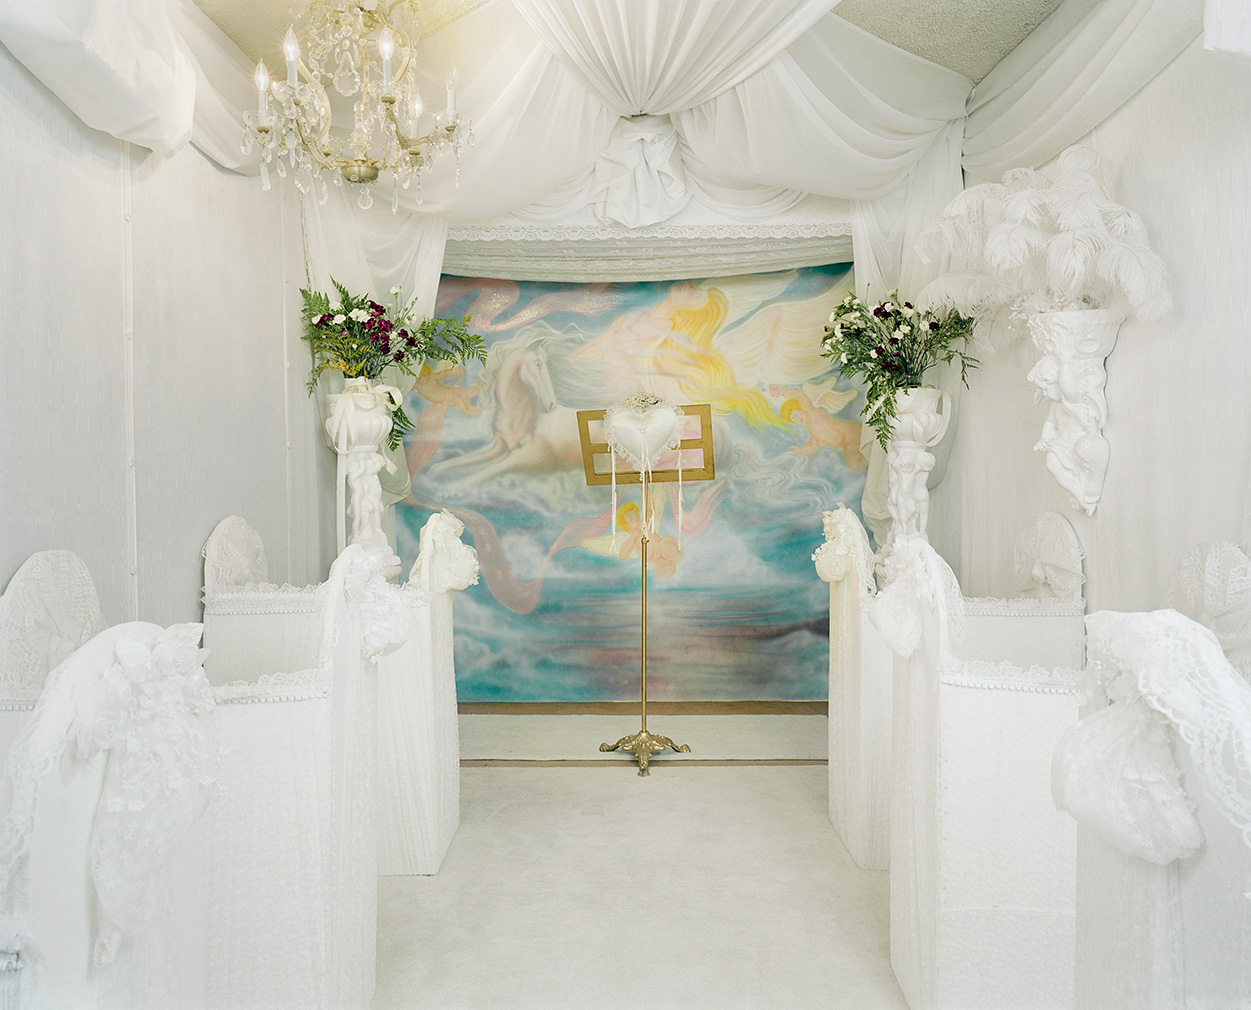 The Angel Chapel, Las Vegas' by Jane Hilton. Part of For Better Or For Worse at the Solaris Gallery, Hastings. Courtesy of the artist and gallery